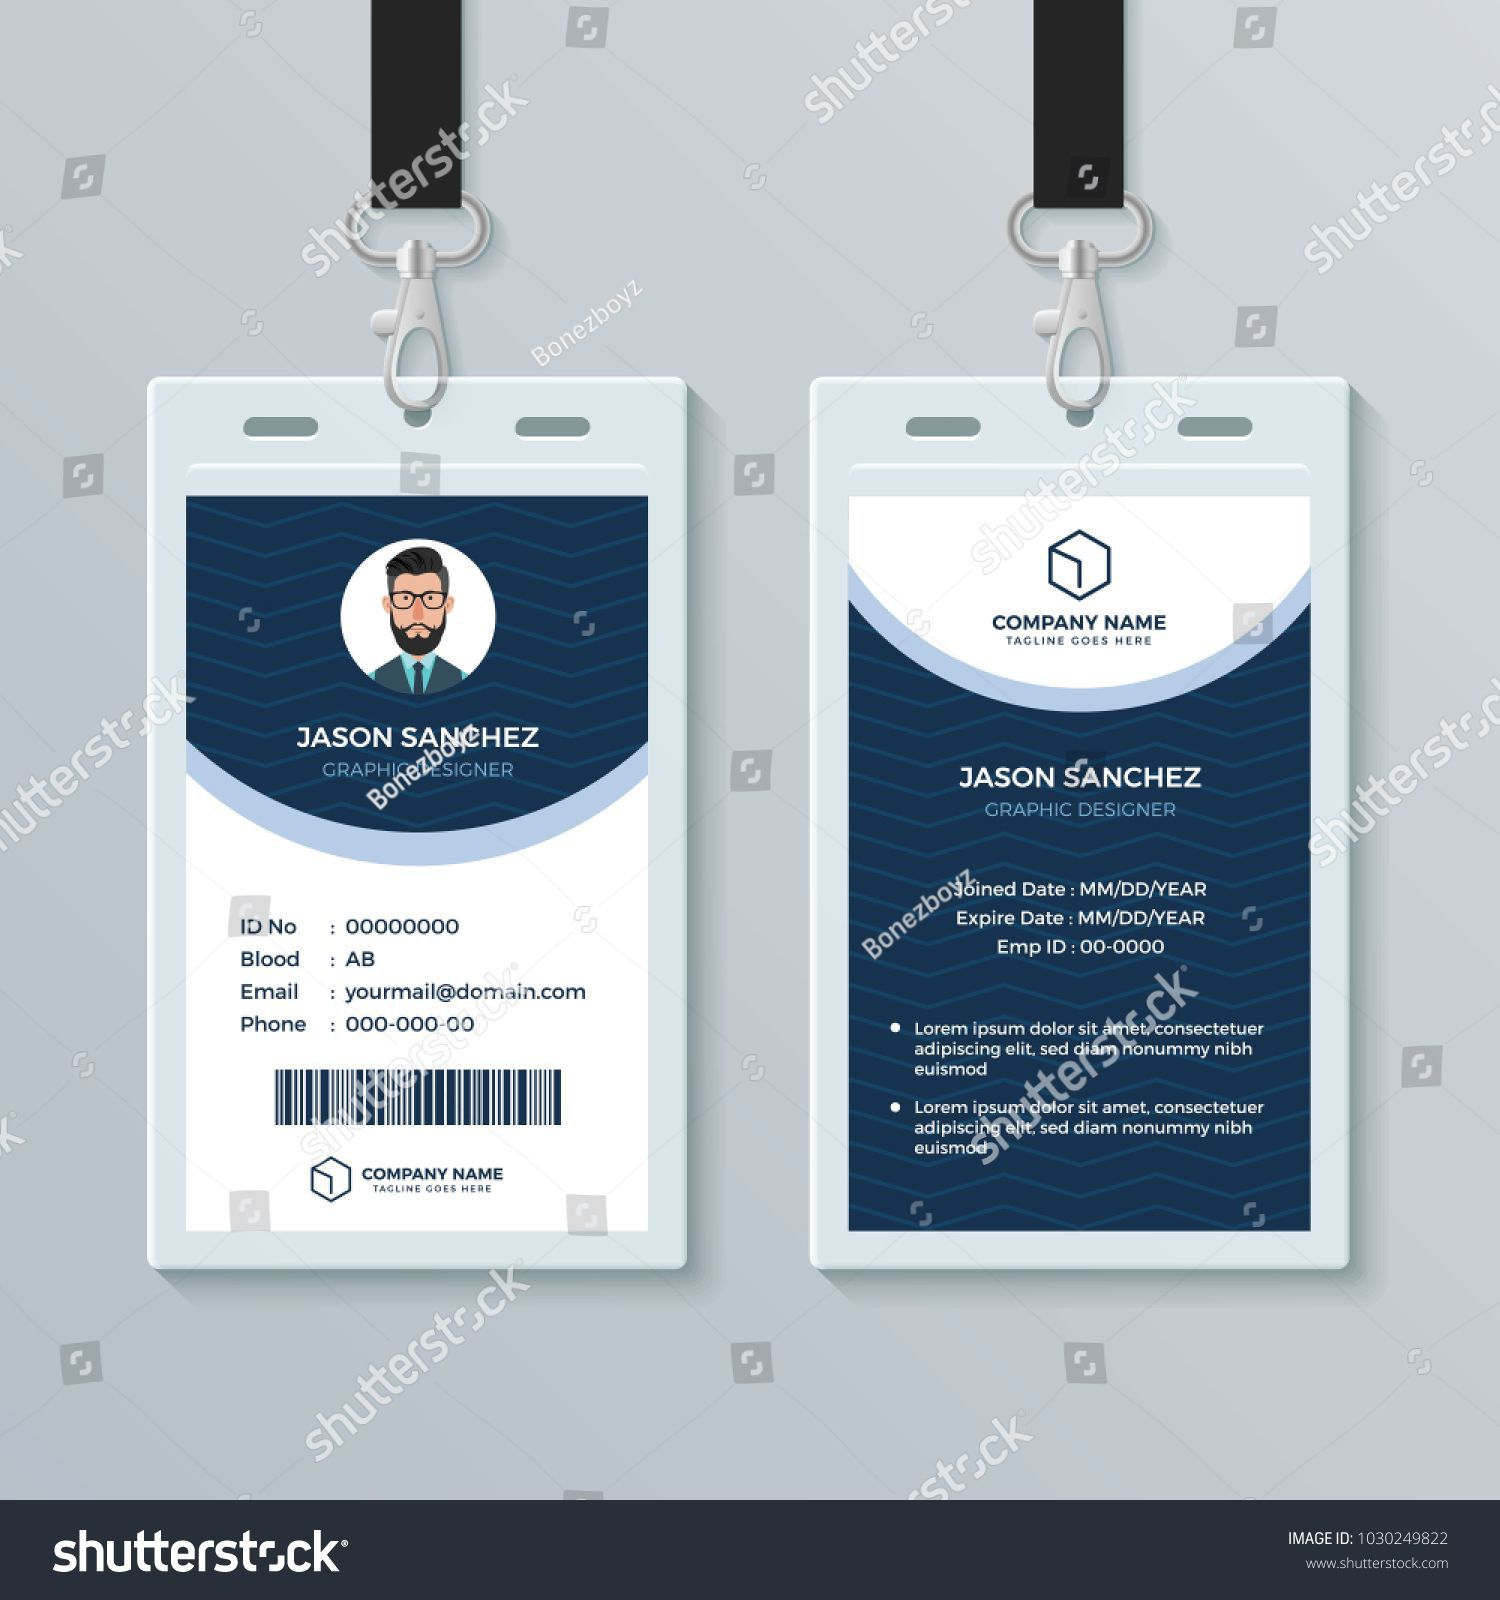 005 Amazing Employee Id Badge Template Highest Clarity  Avery Card Free Download WordFull